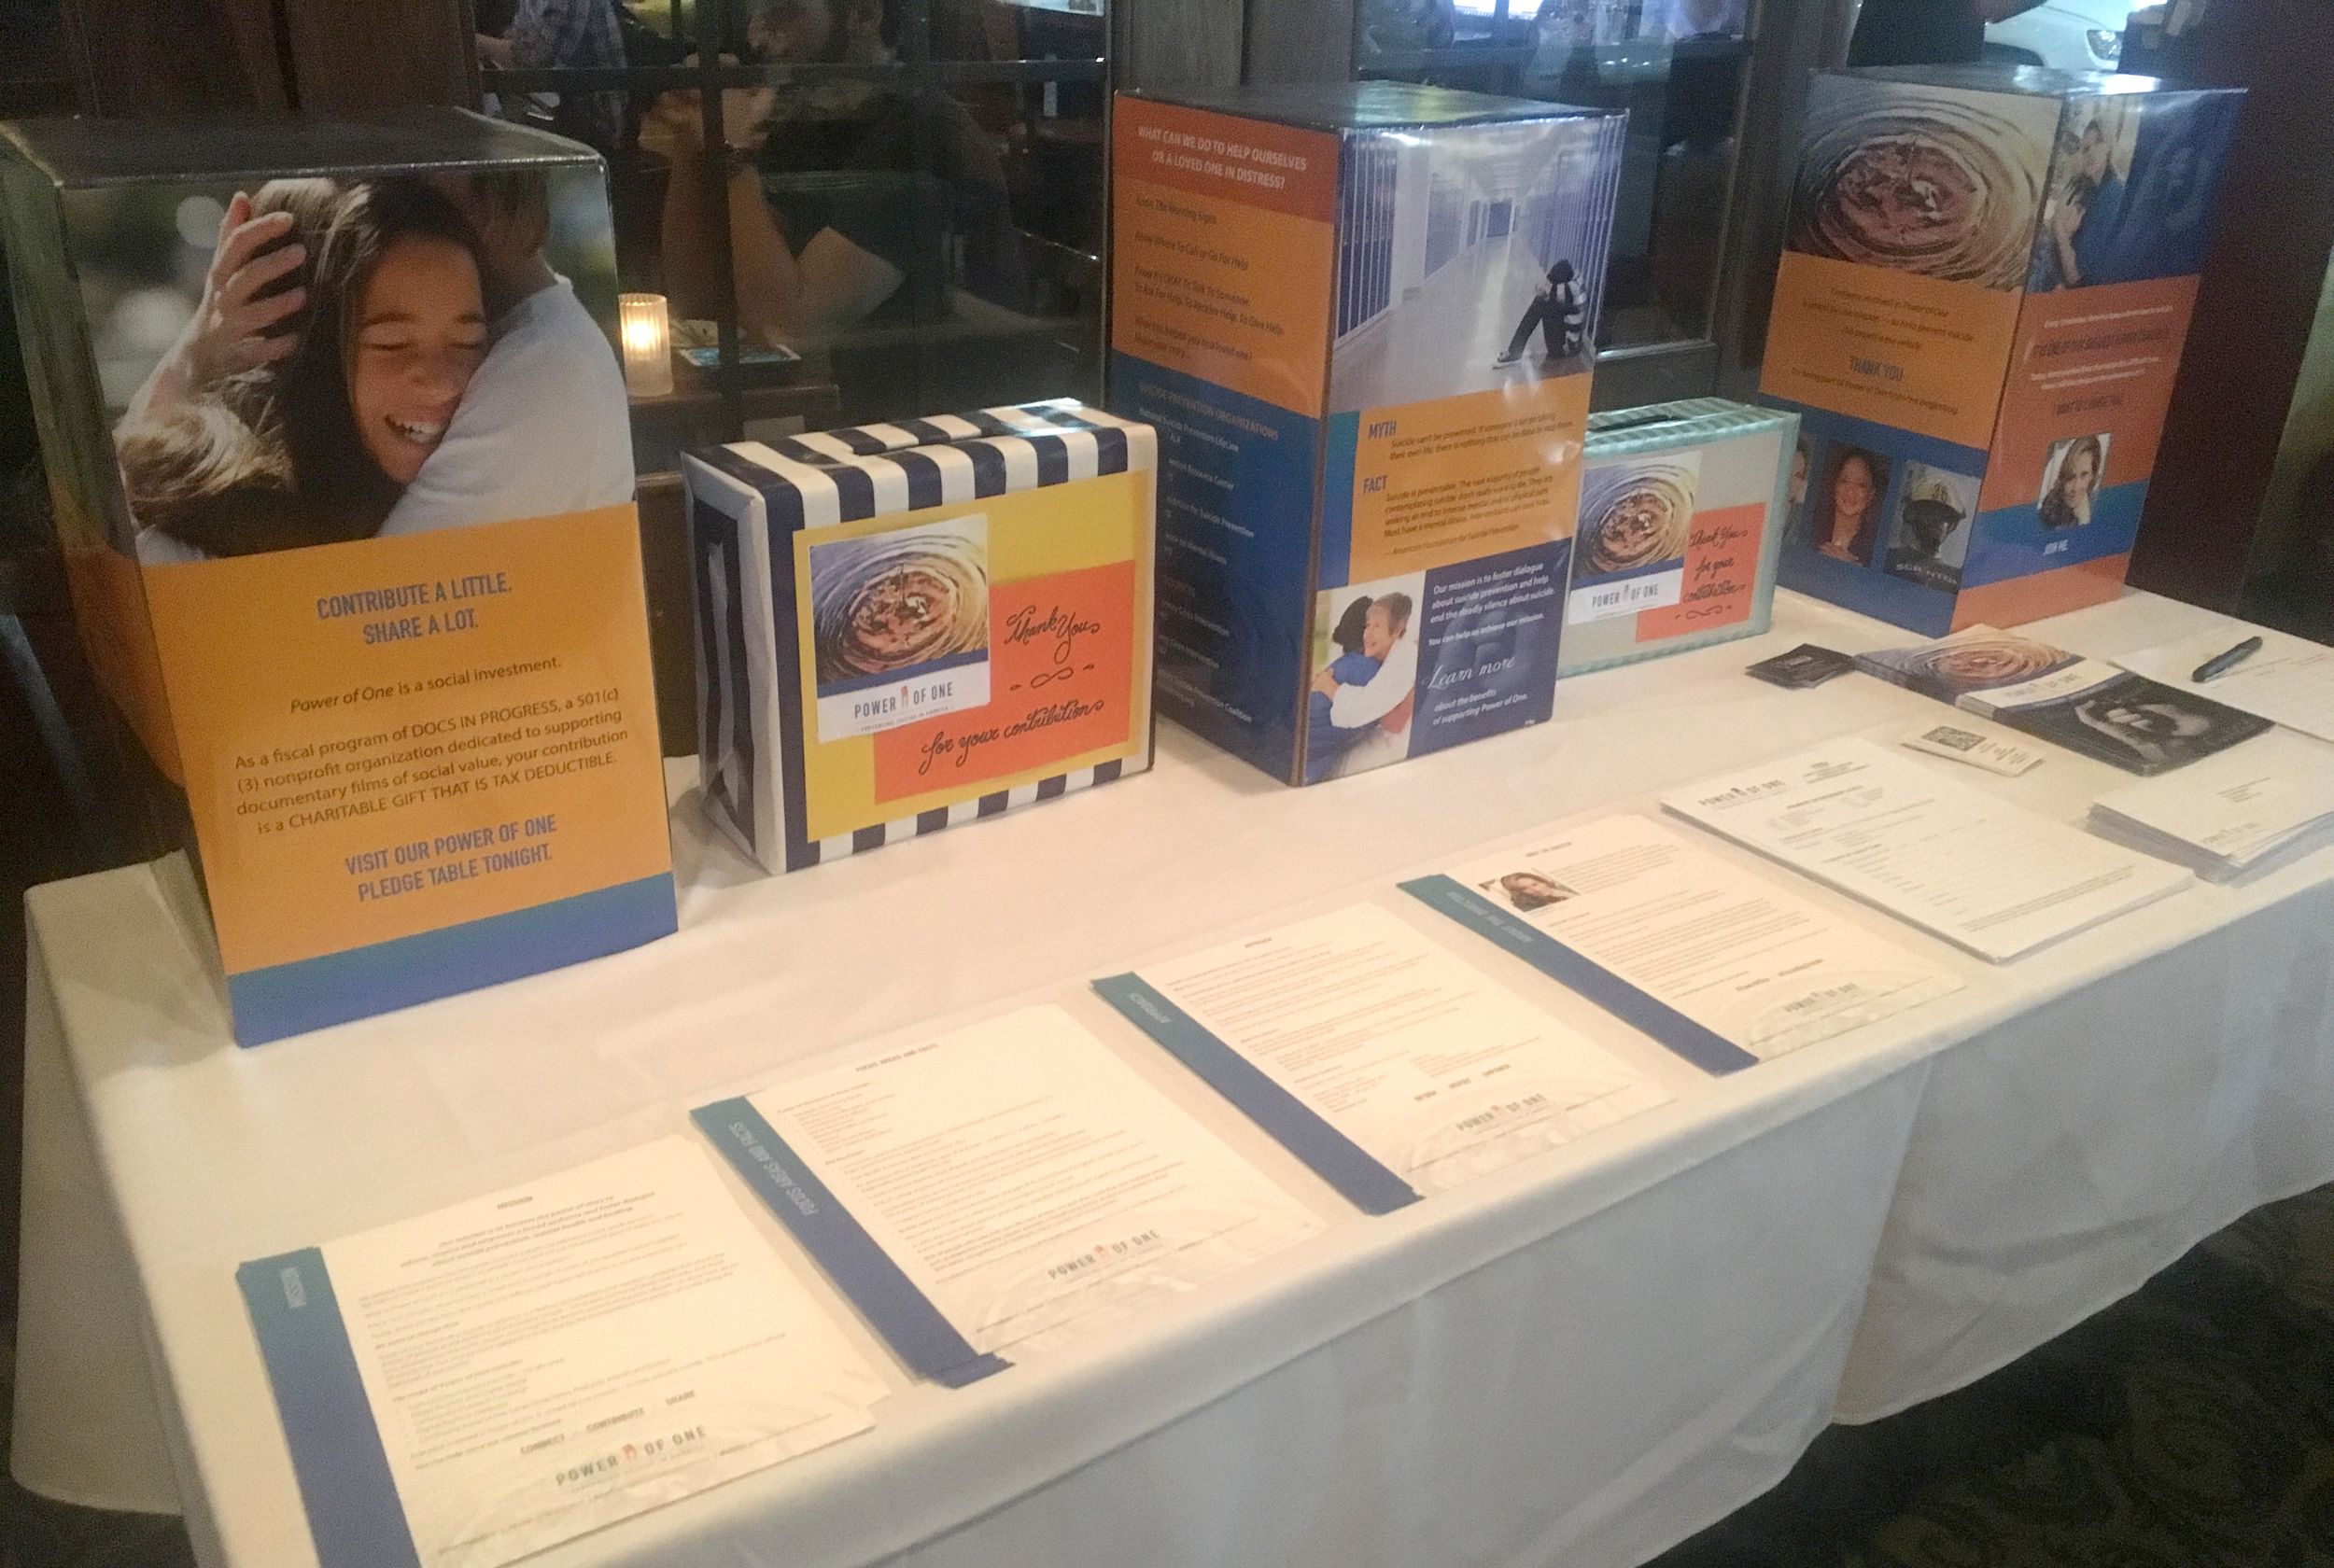 Story Stations and marketing materials that we created together on display at the event in Arlington, Virginia.